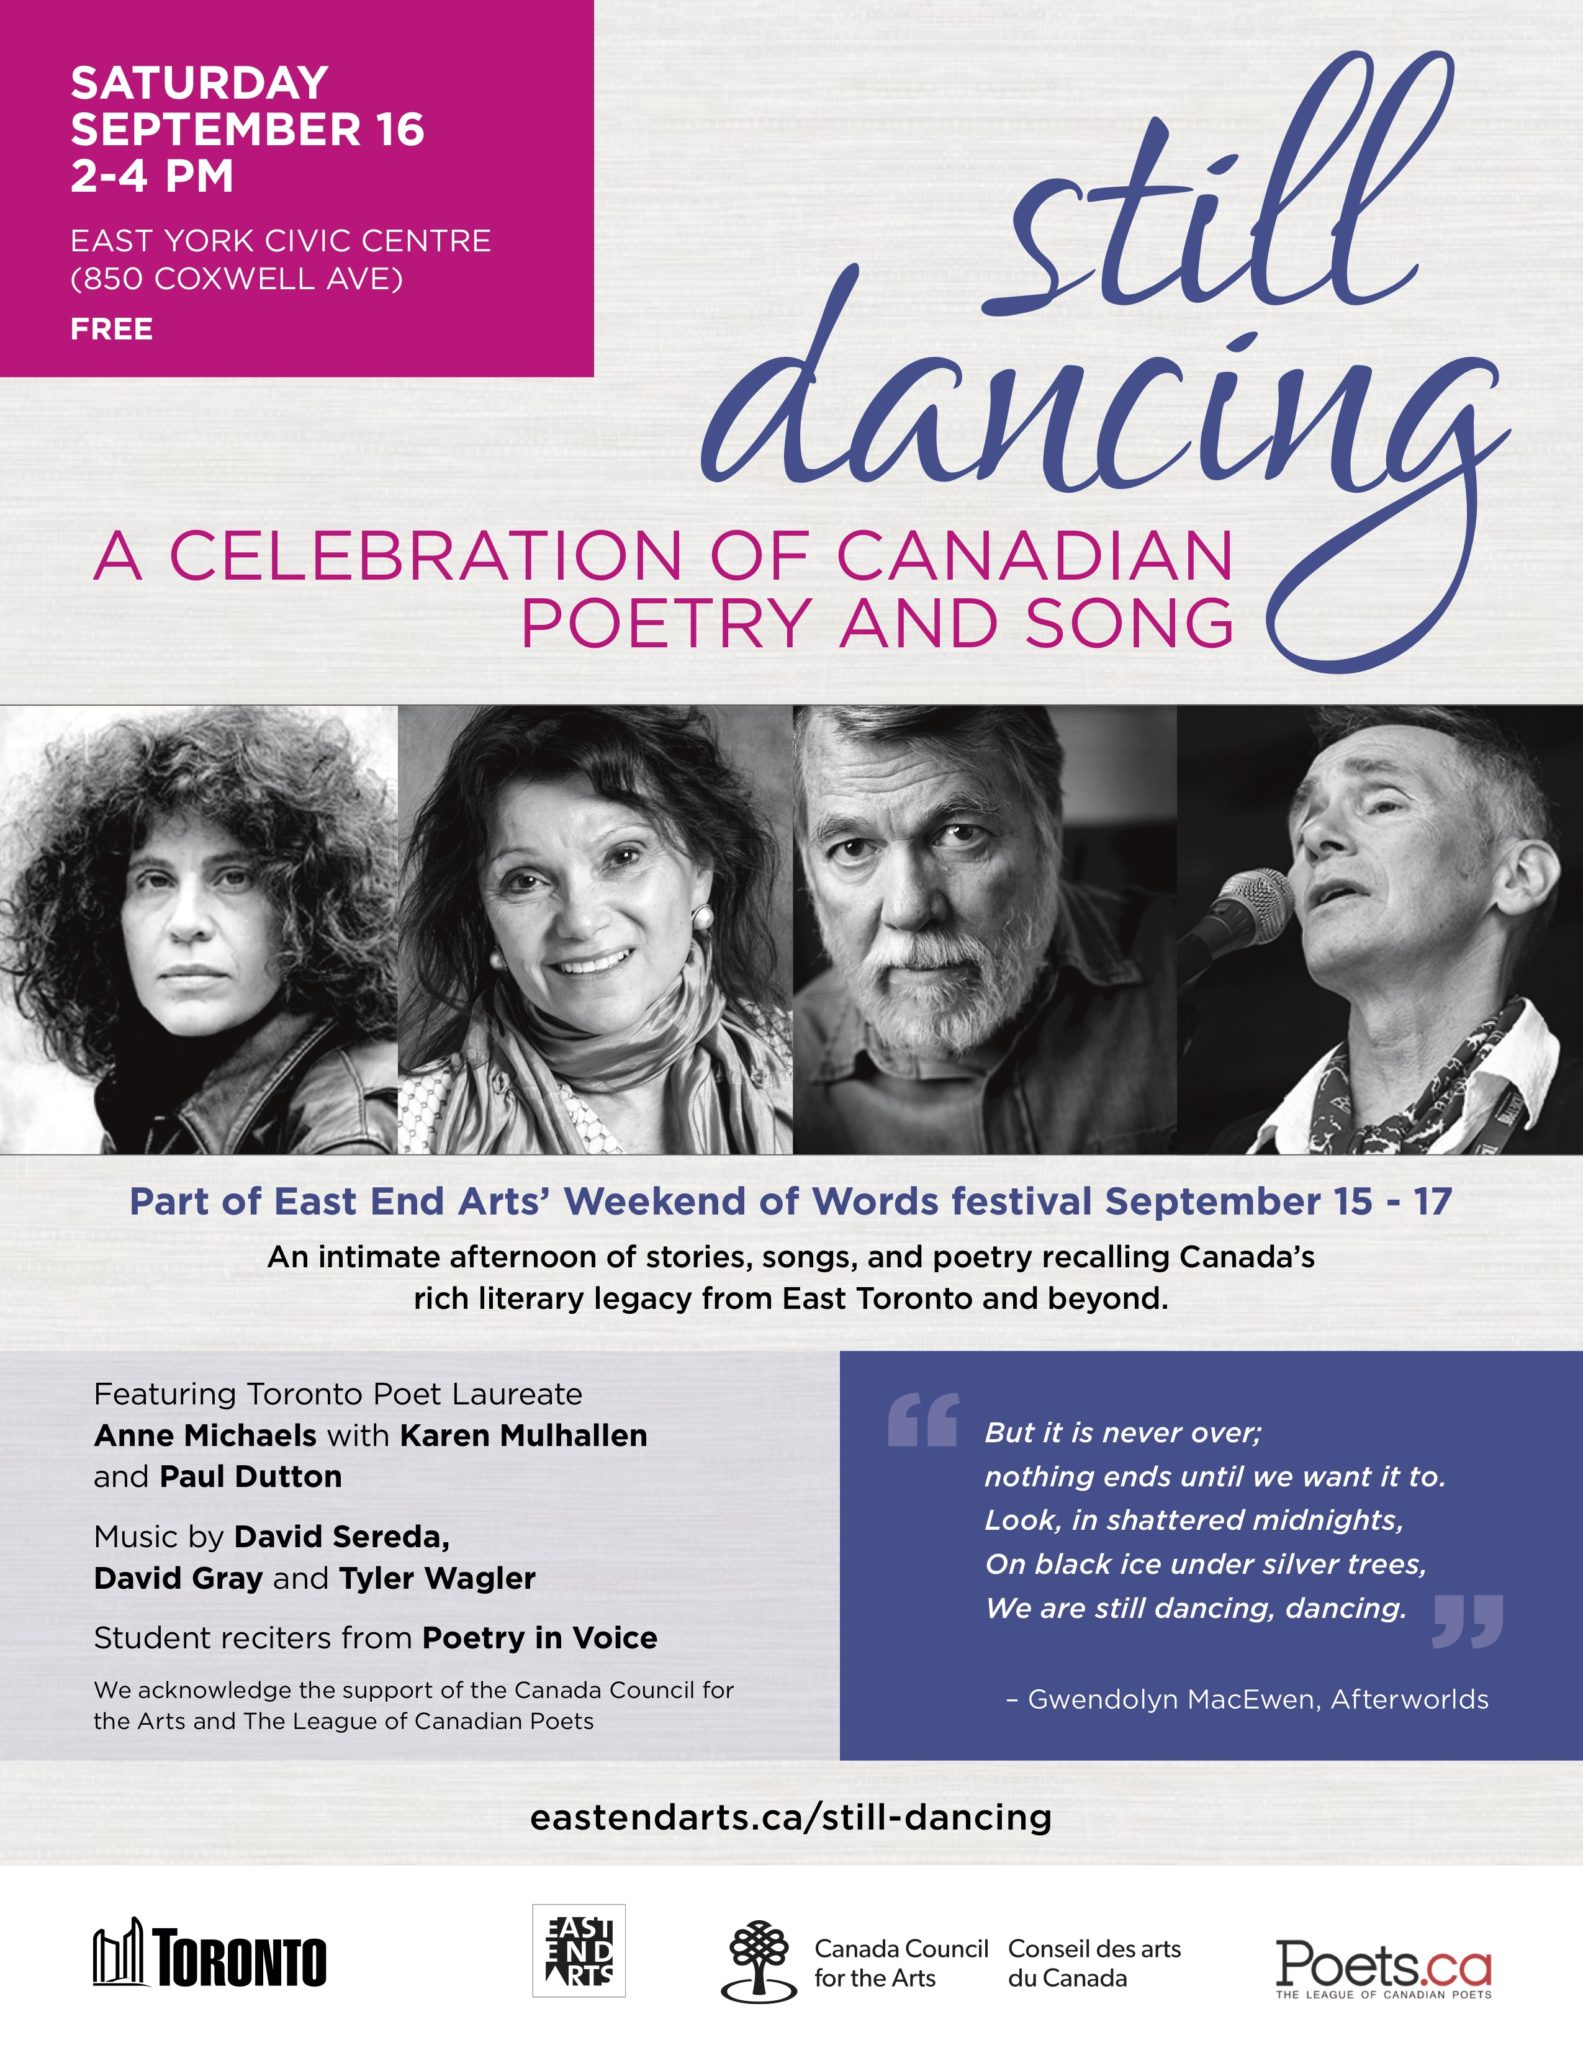 still dancing: a celebration of Canadian poetry and song